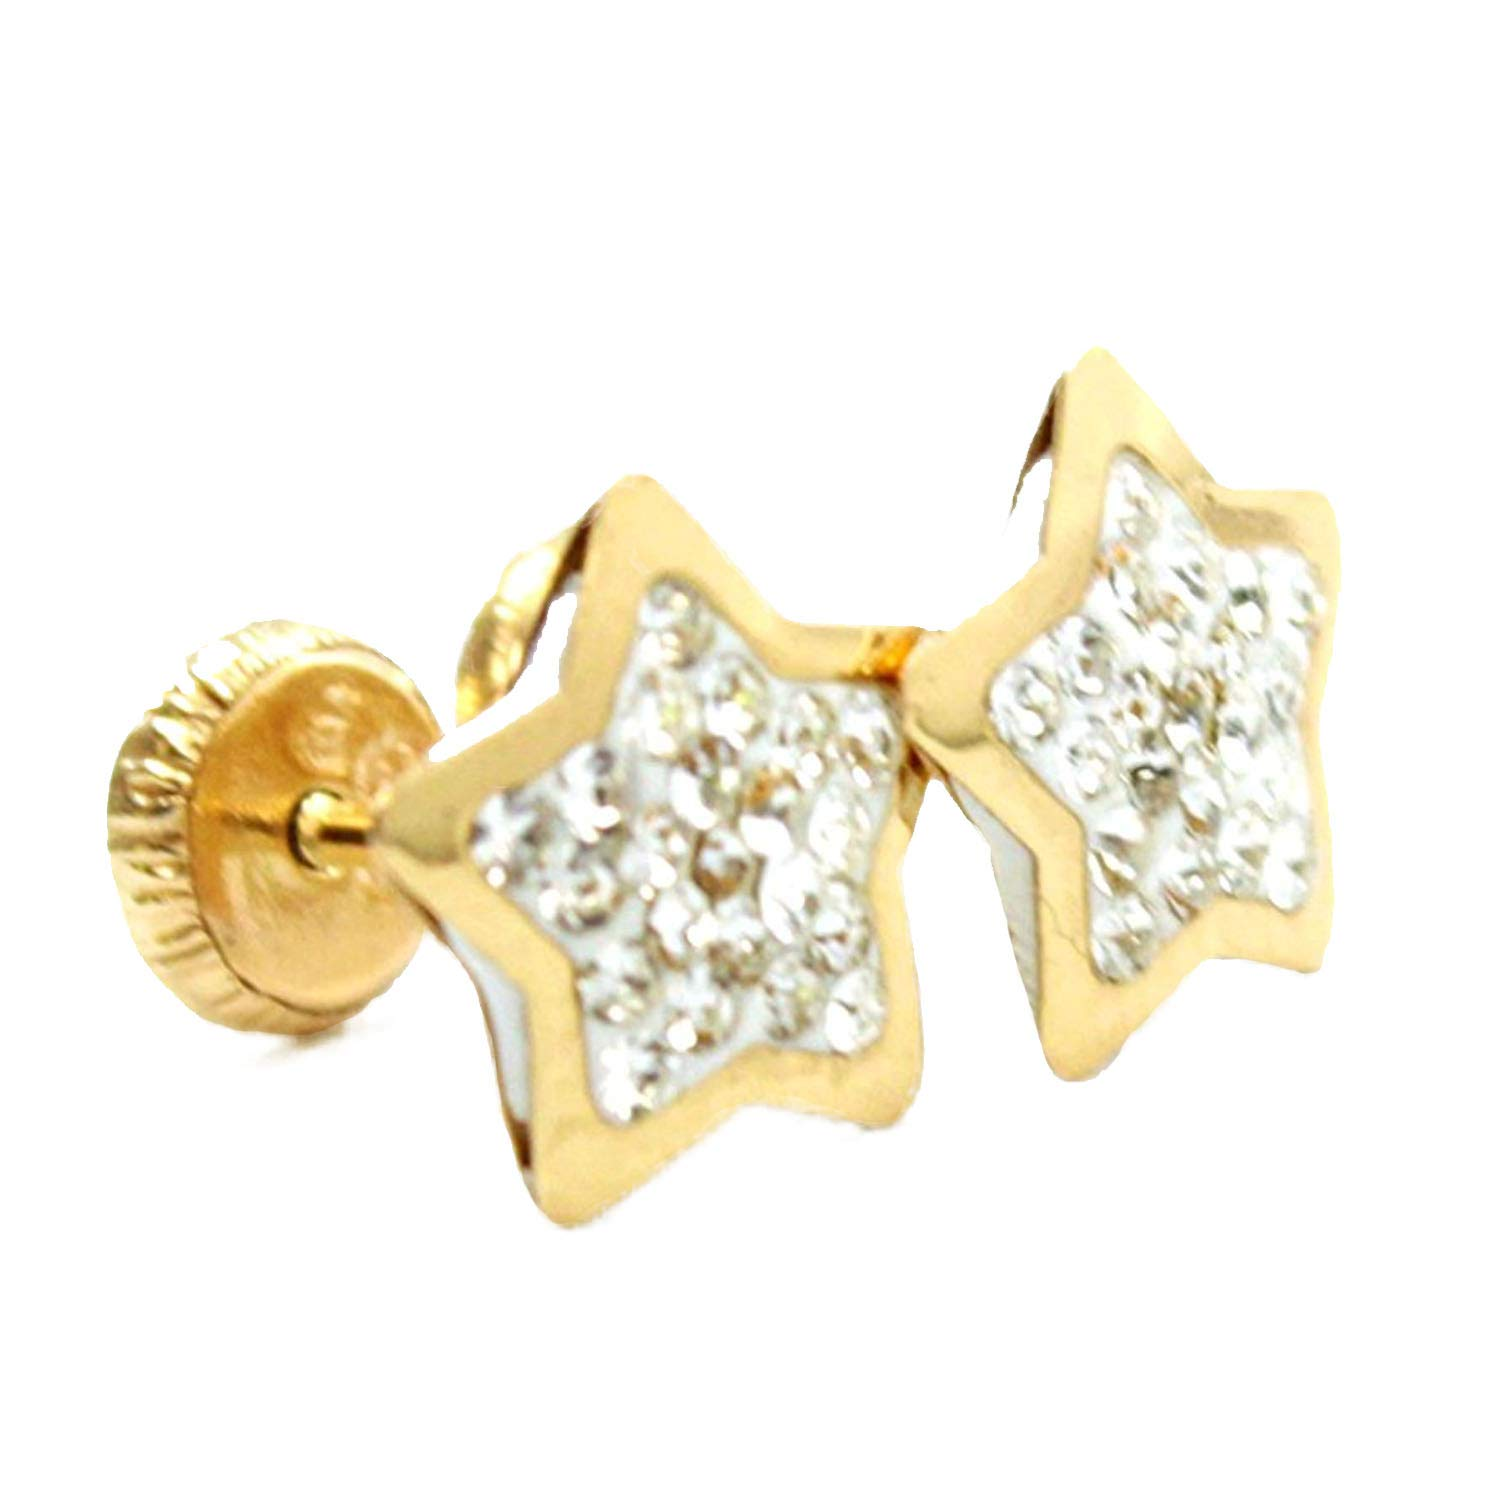 14k Yellow Gold Star Design Stud Earrings with Stones 2mm